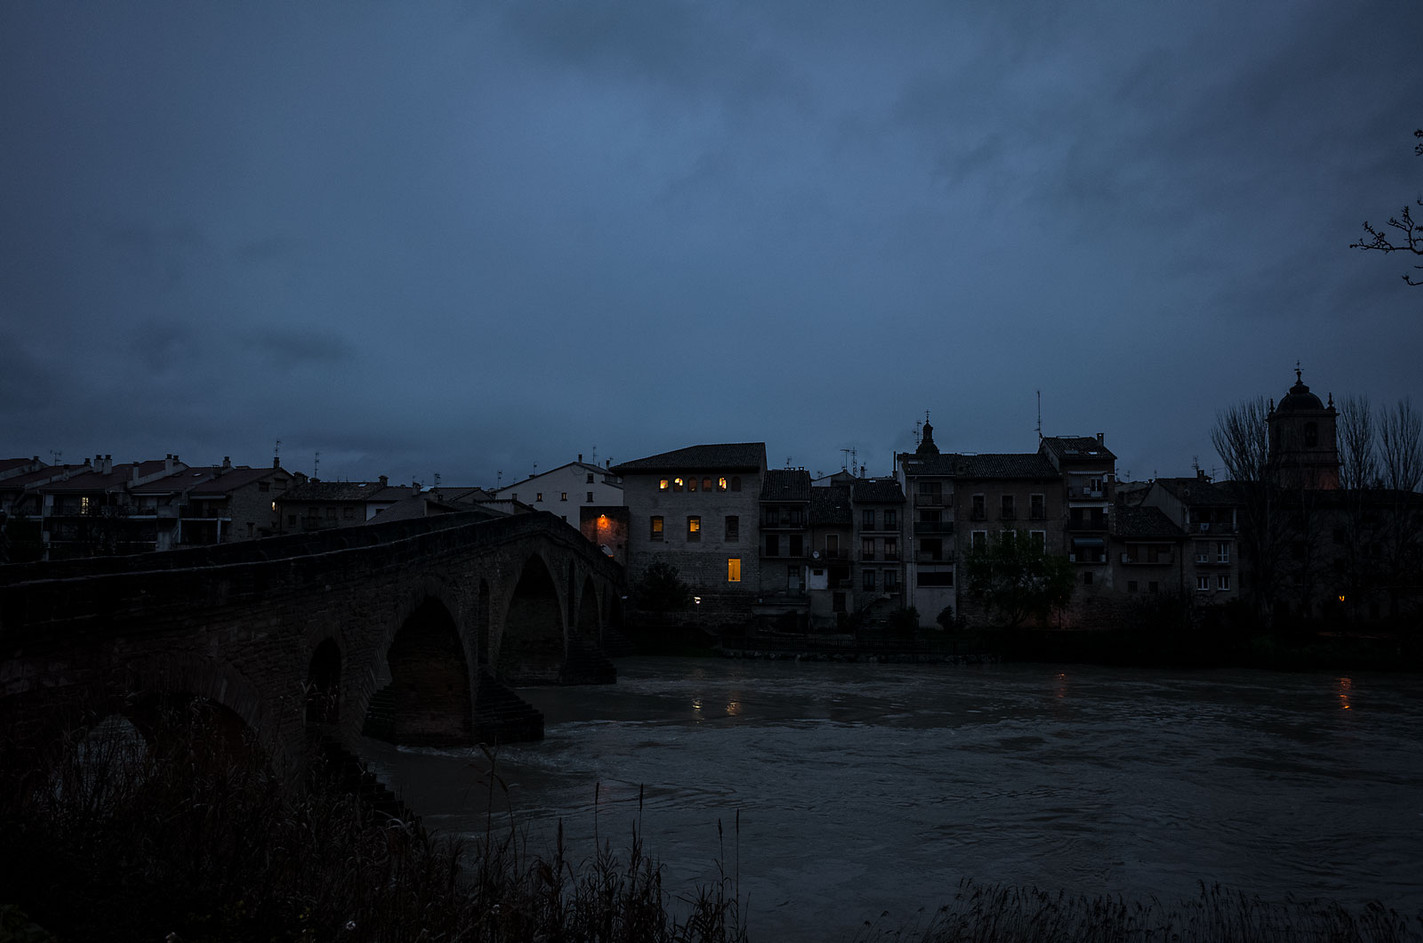 The lights of an albergue are the only sign of predawn life in Puente la Reina.